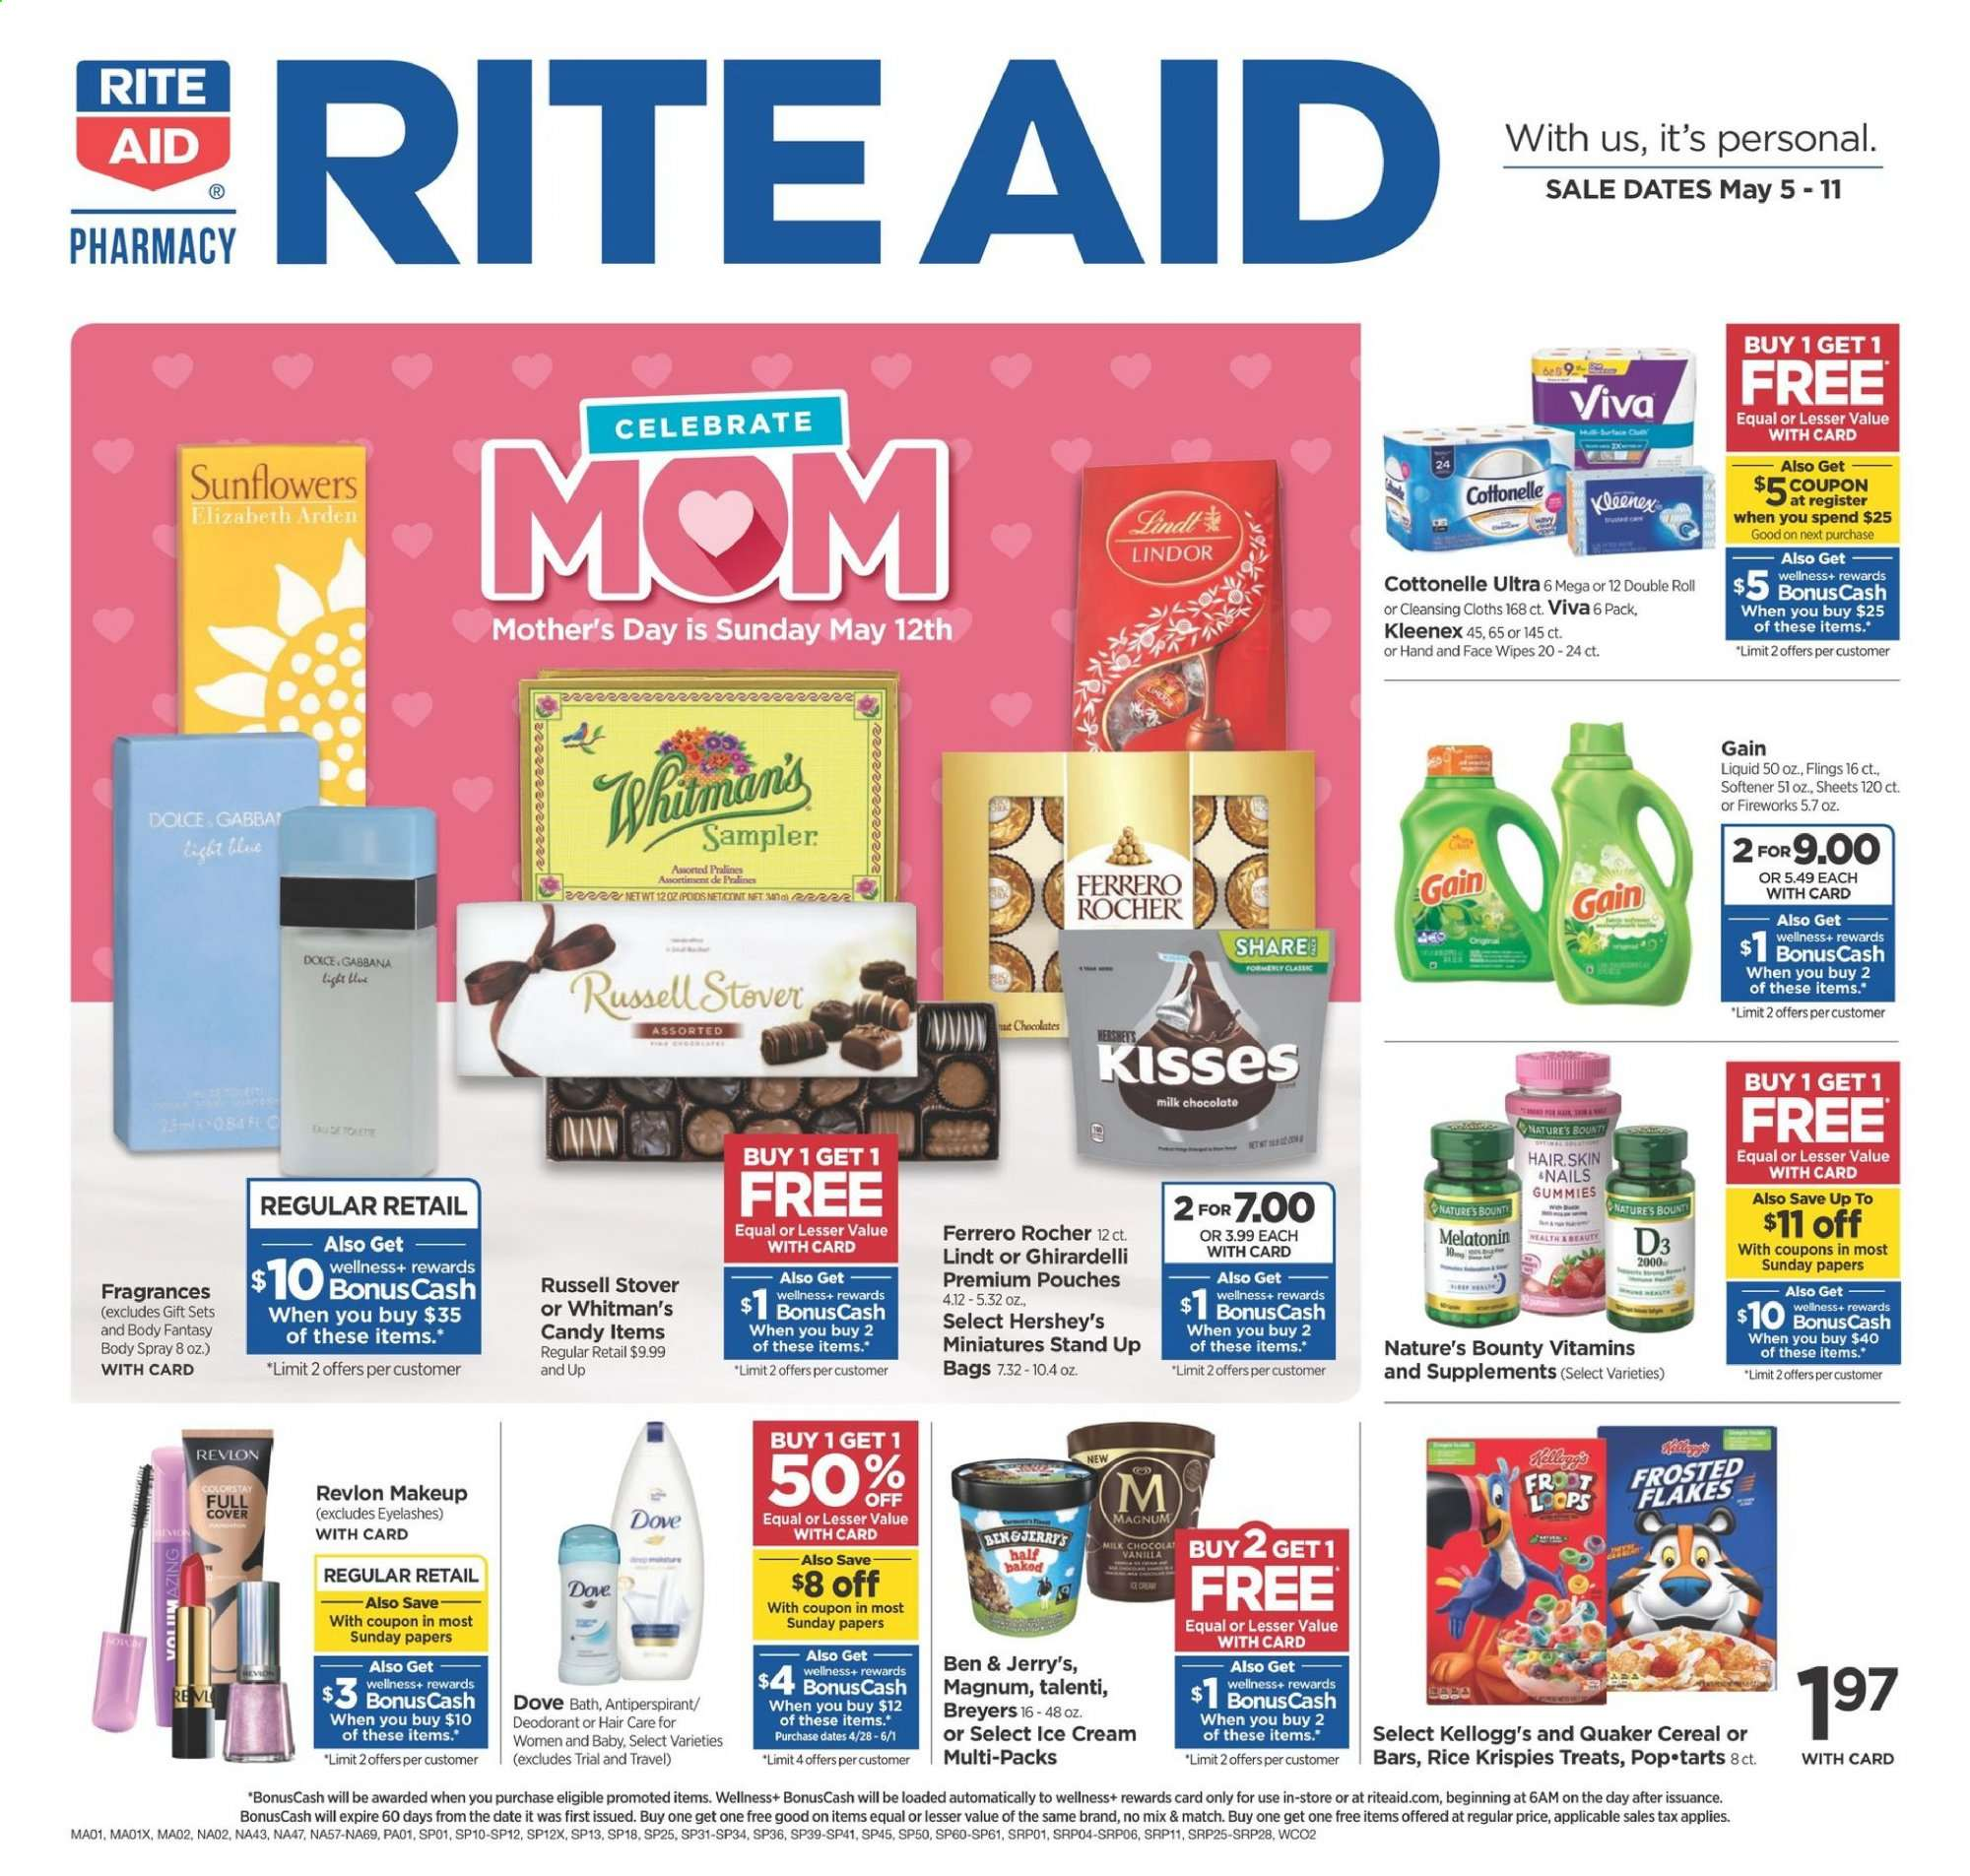 RITE AID Flyer - 05.05.2019 - 05.11.2019 - Sales products - bag, bath, cereals, cottonelle, dates, dove, kleenex, magnum, makeup, nature's bounty, revlon, rice, stand, wipes, ice cream, candy, softener, cereal, eyelashes, lindt, lindor, ferrero rocher, bounty, liquid, treats, cream. Page 1.